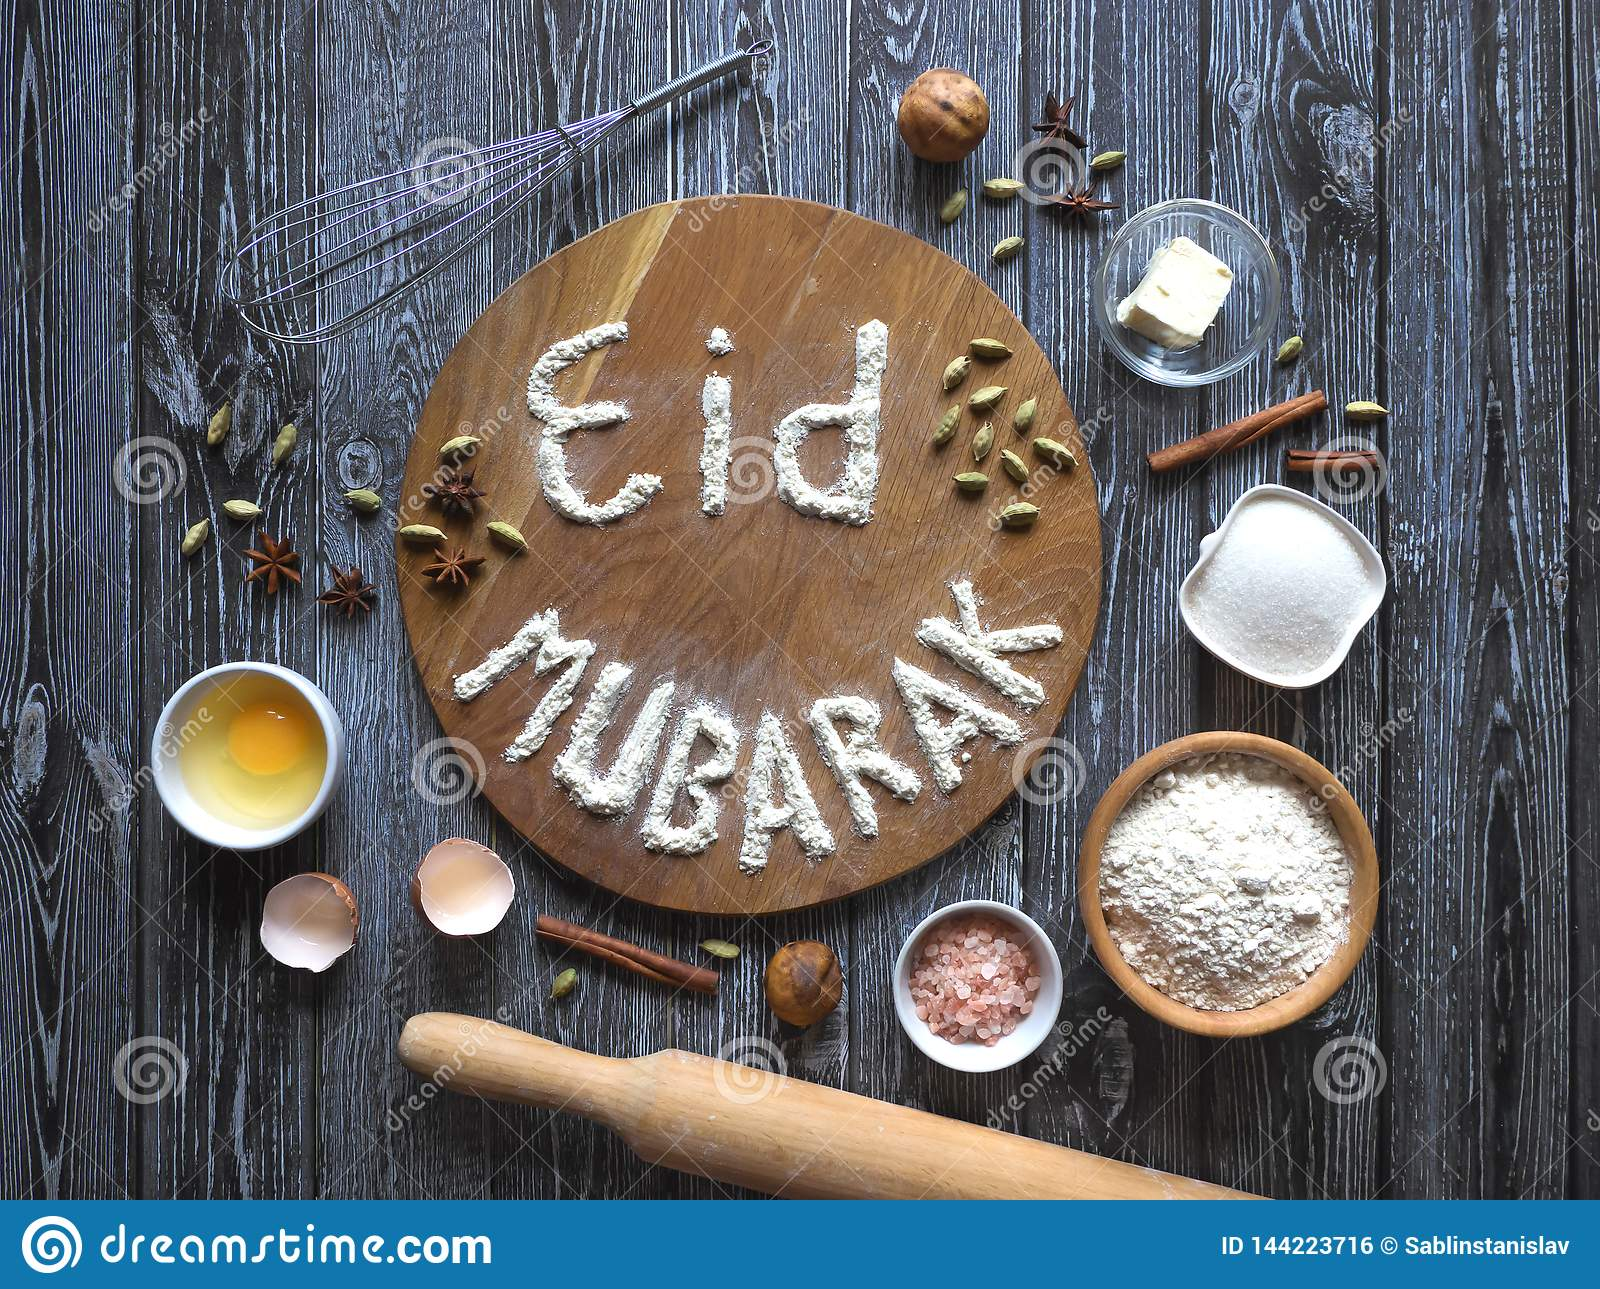 Arabic Cuisine Background  Mubarak - Islamic Holiday Welcome